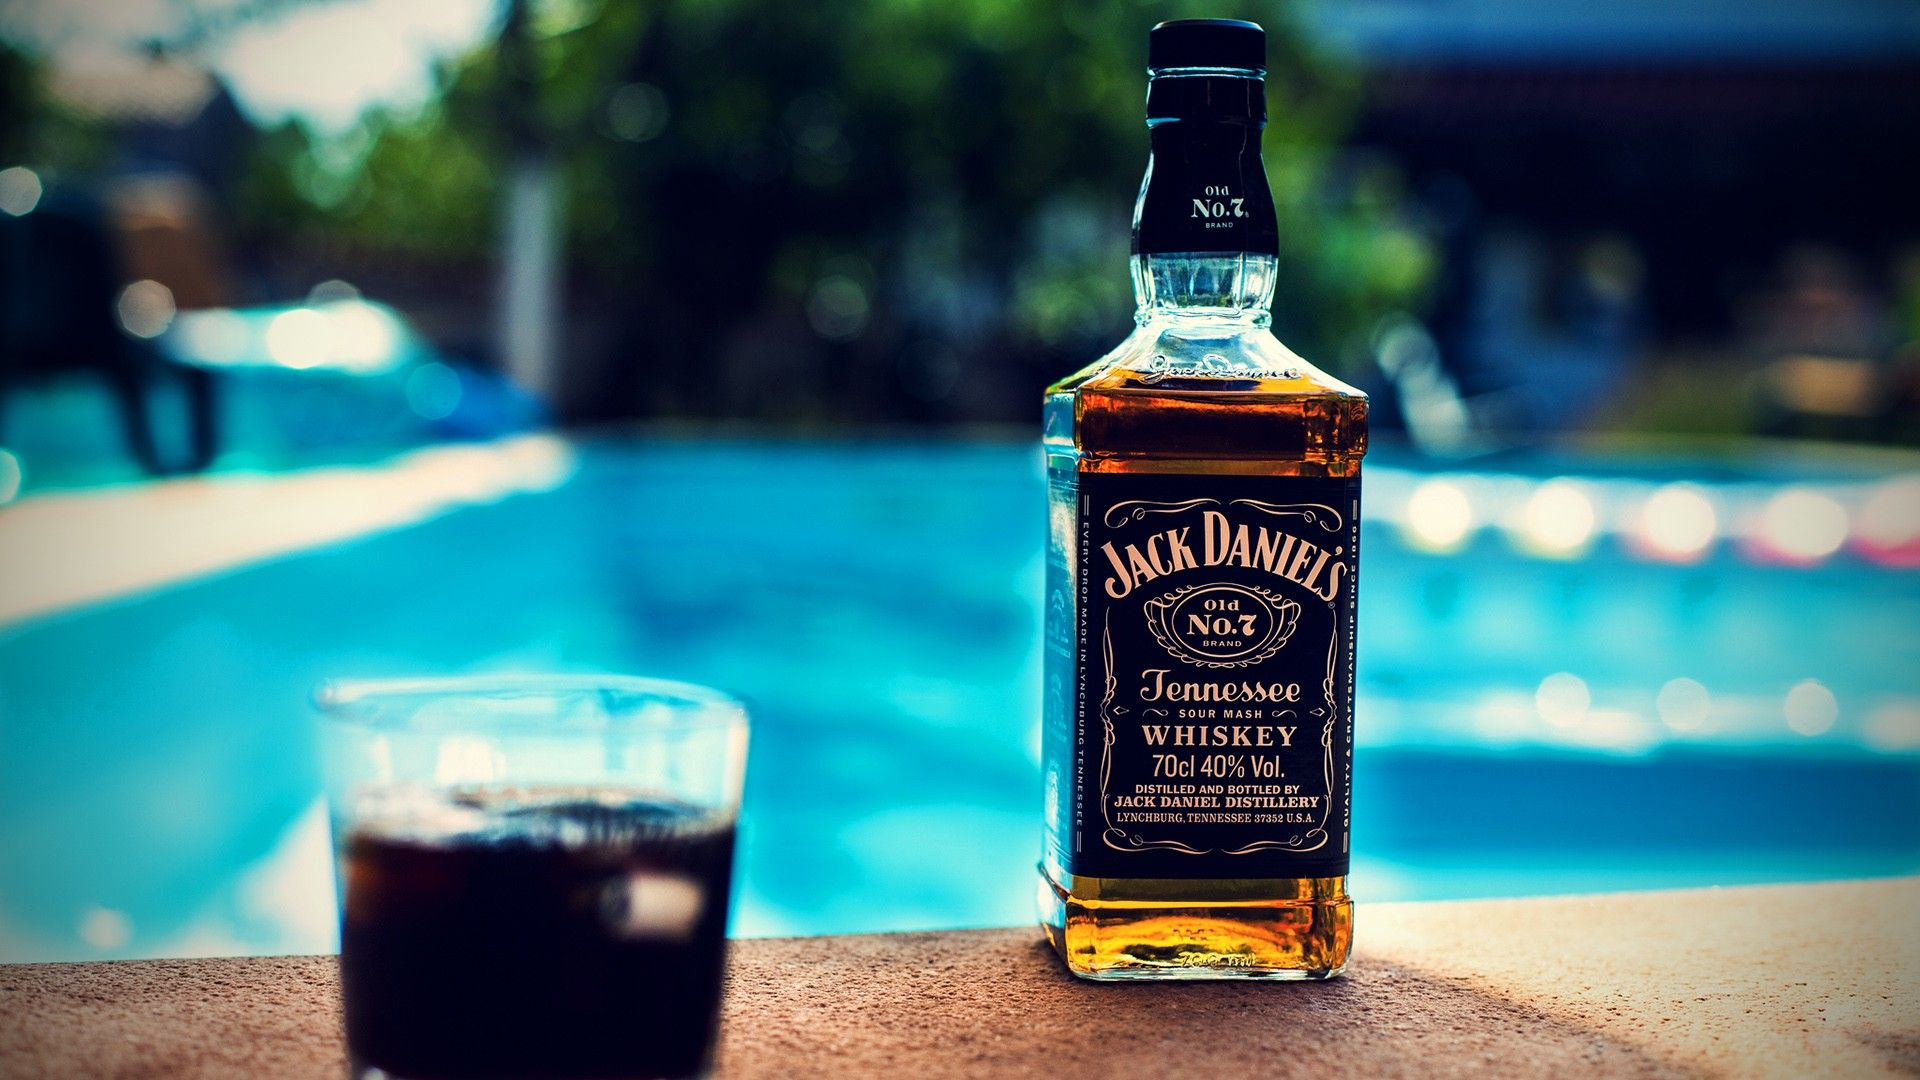 Full hd wallpaper download jack daniels hd widescreen wallpaper full hd wallpaper download jack daniels hd widescreen wallpaper with high resolution for desktop background voltagebd